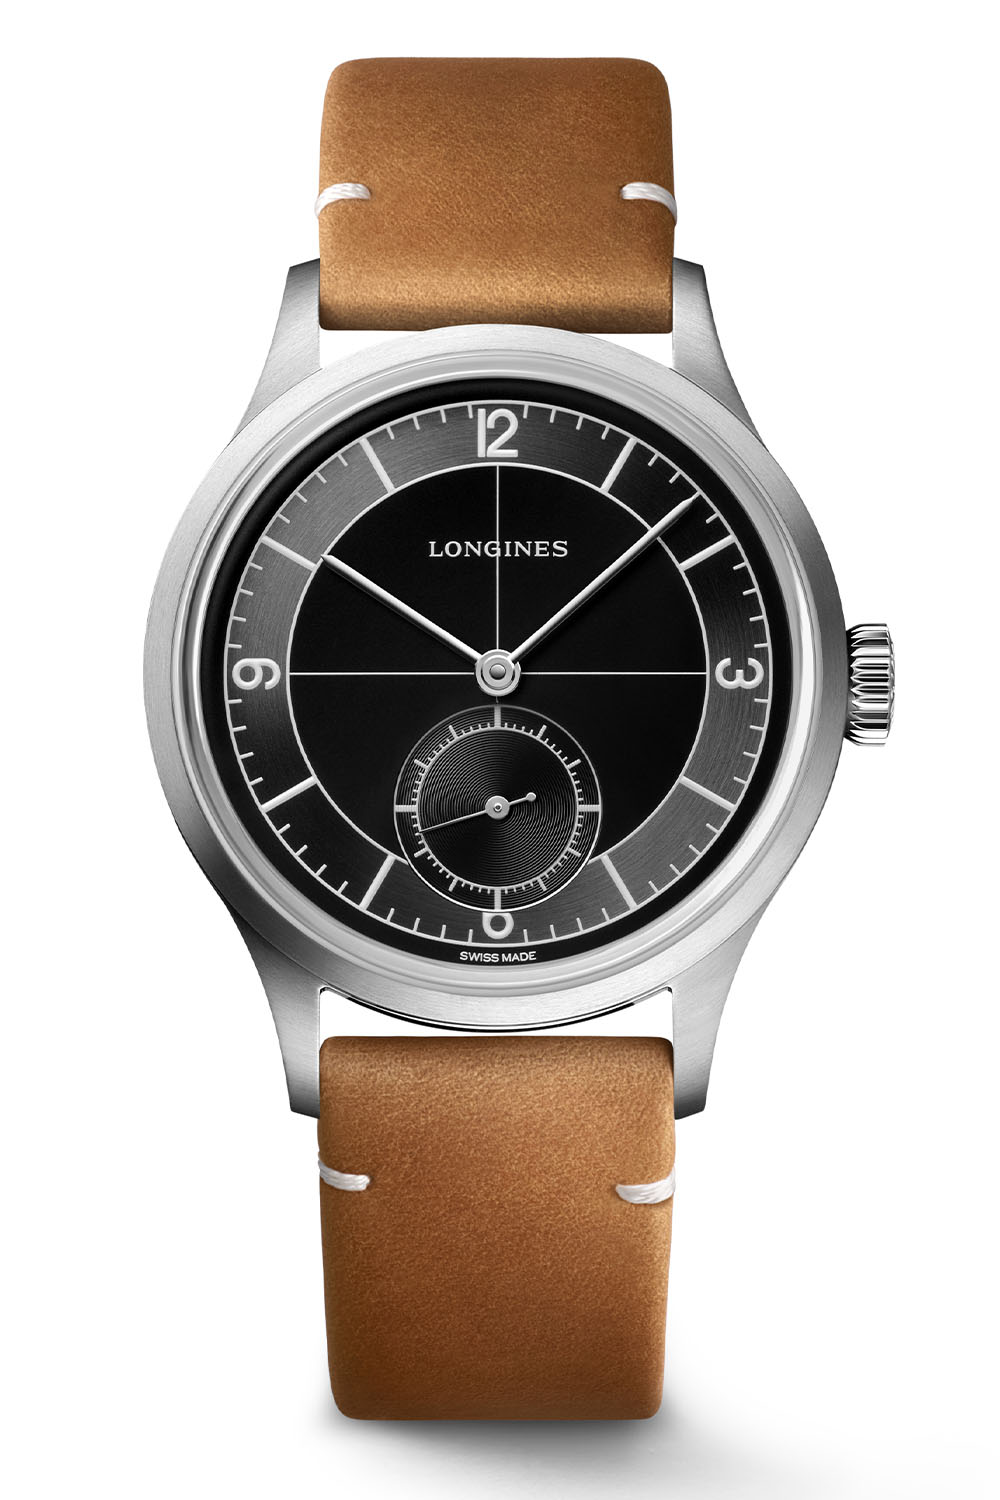 Longines Heritage Classic Black Sector dial